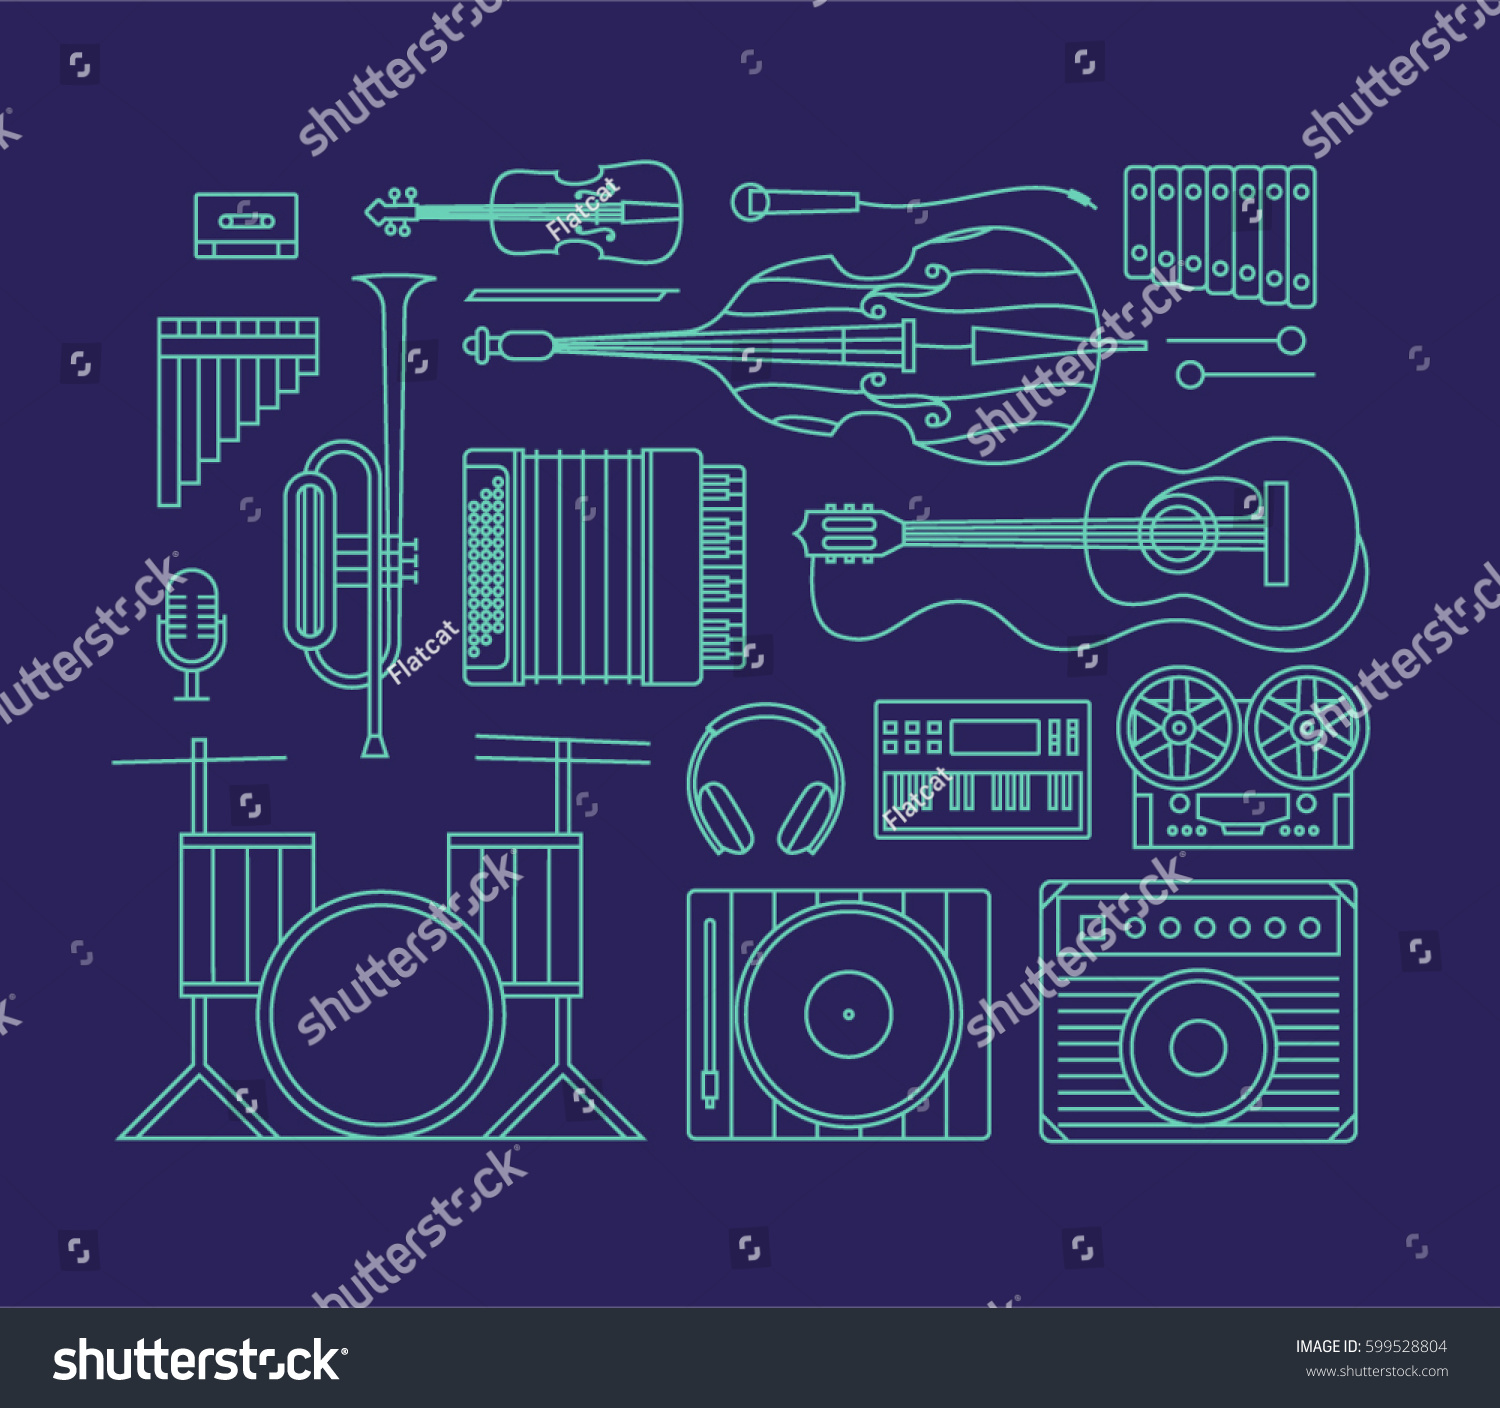 Music Vector Outline Illustration Icon Set Stock Royalty Violin Bass Guitar Wiring Diagram Art Background Audio Cassette